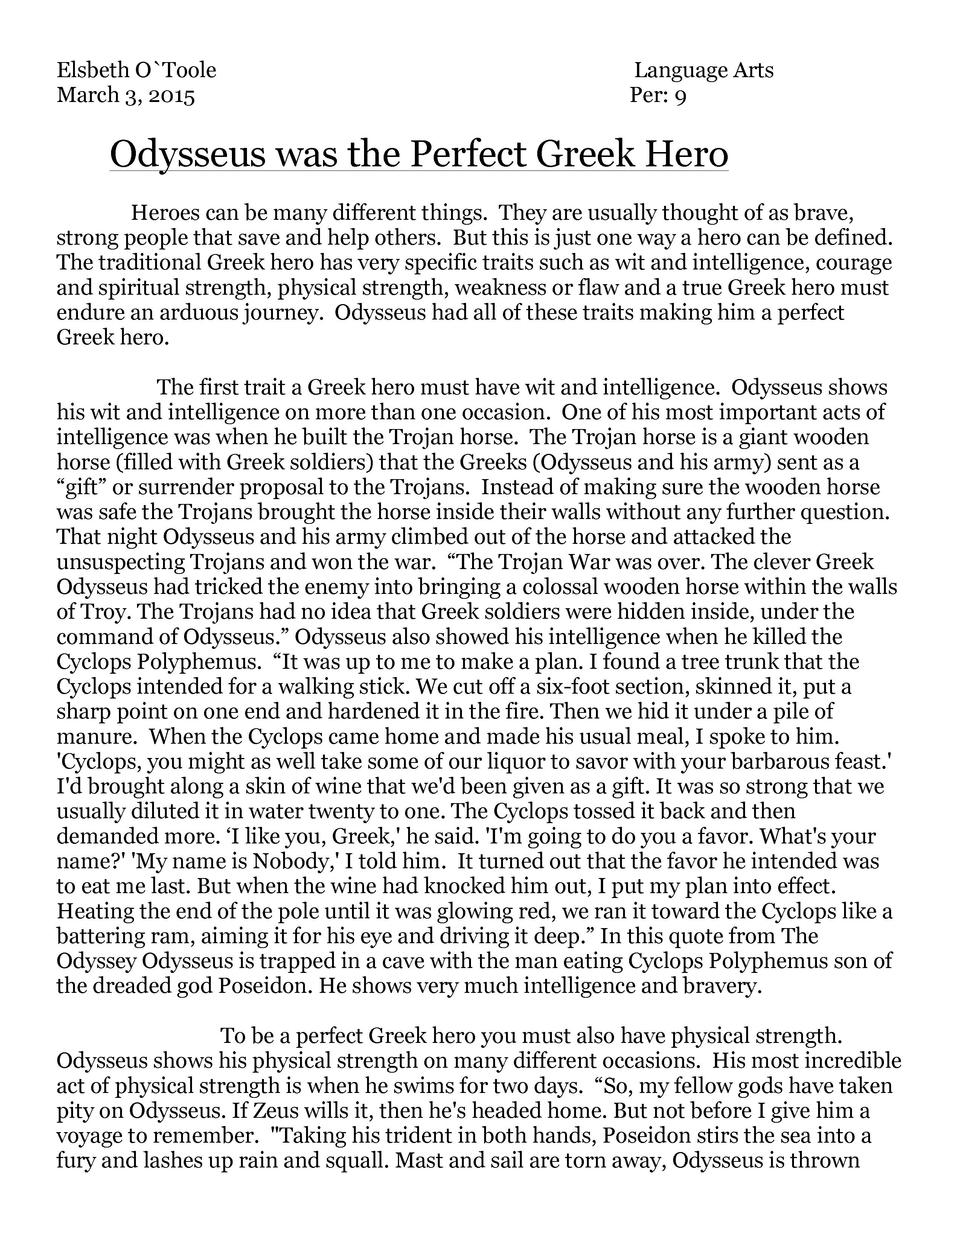 essays on how odysseus is courageous